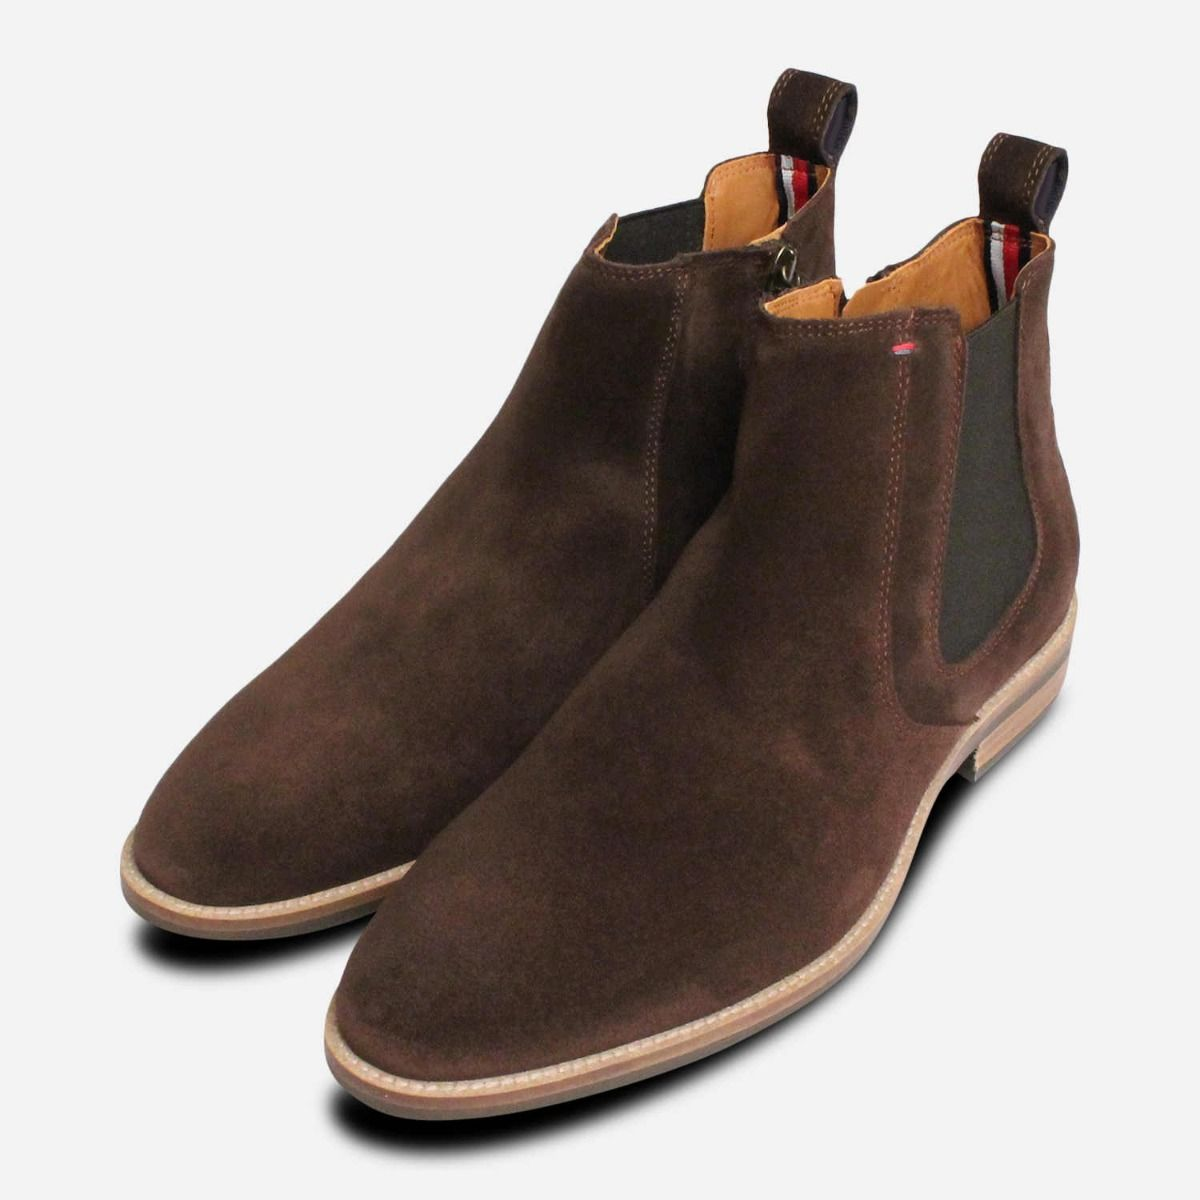 9f03db70b Tommy Hilfiger Brown Suede Chelsea Zip Boots for Men